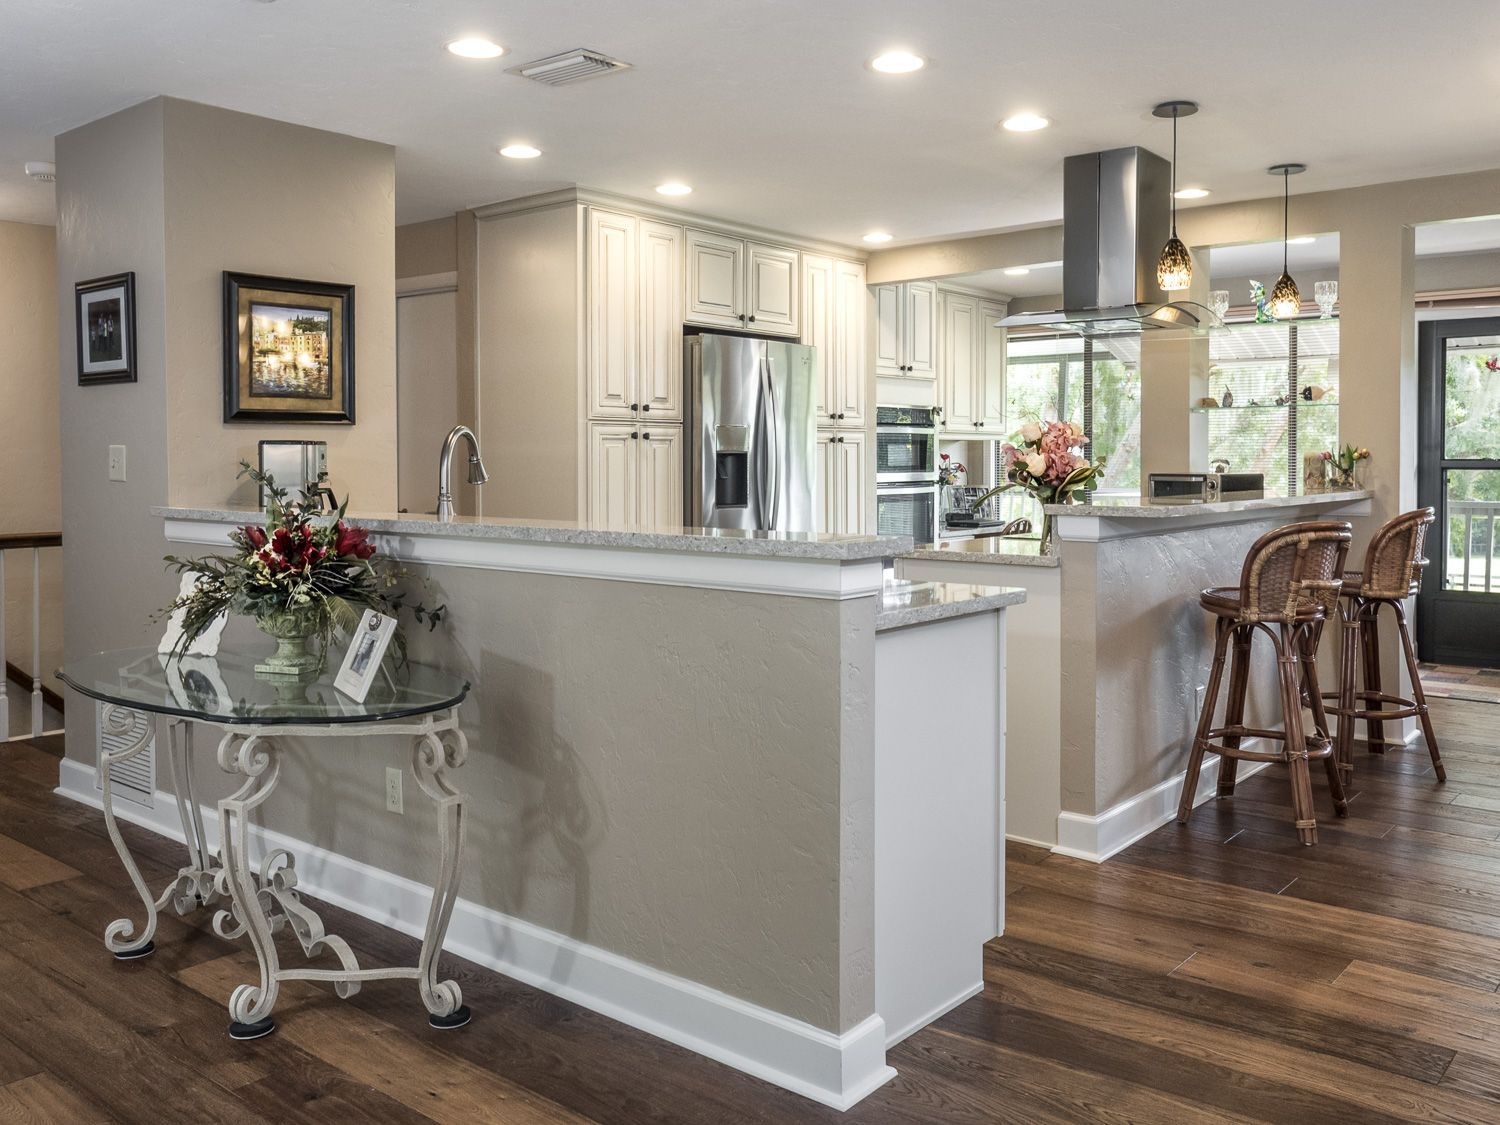 Open Kitchen In Cream Colored Cabinets Wood Floors